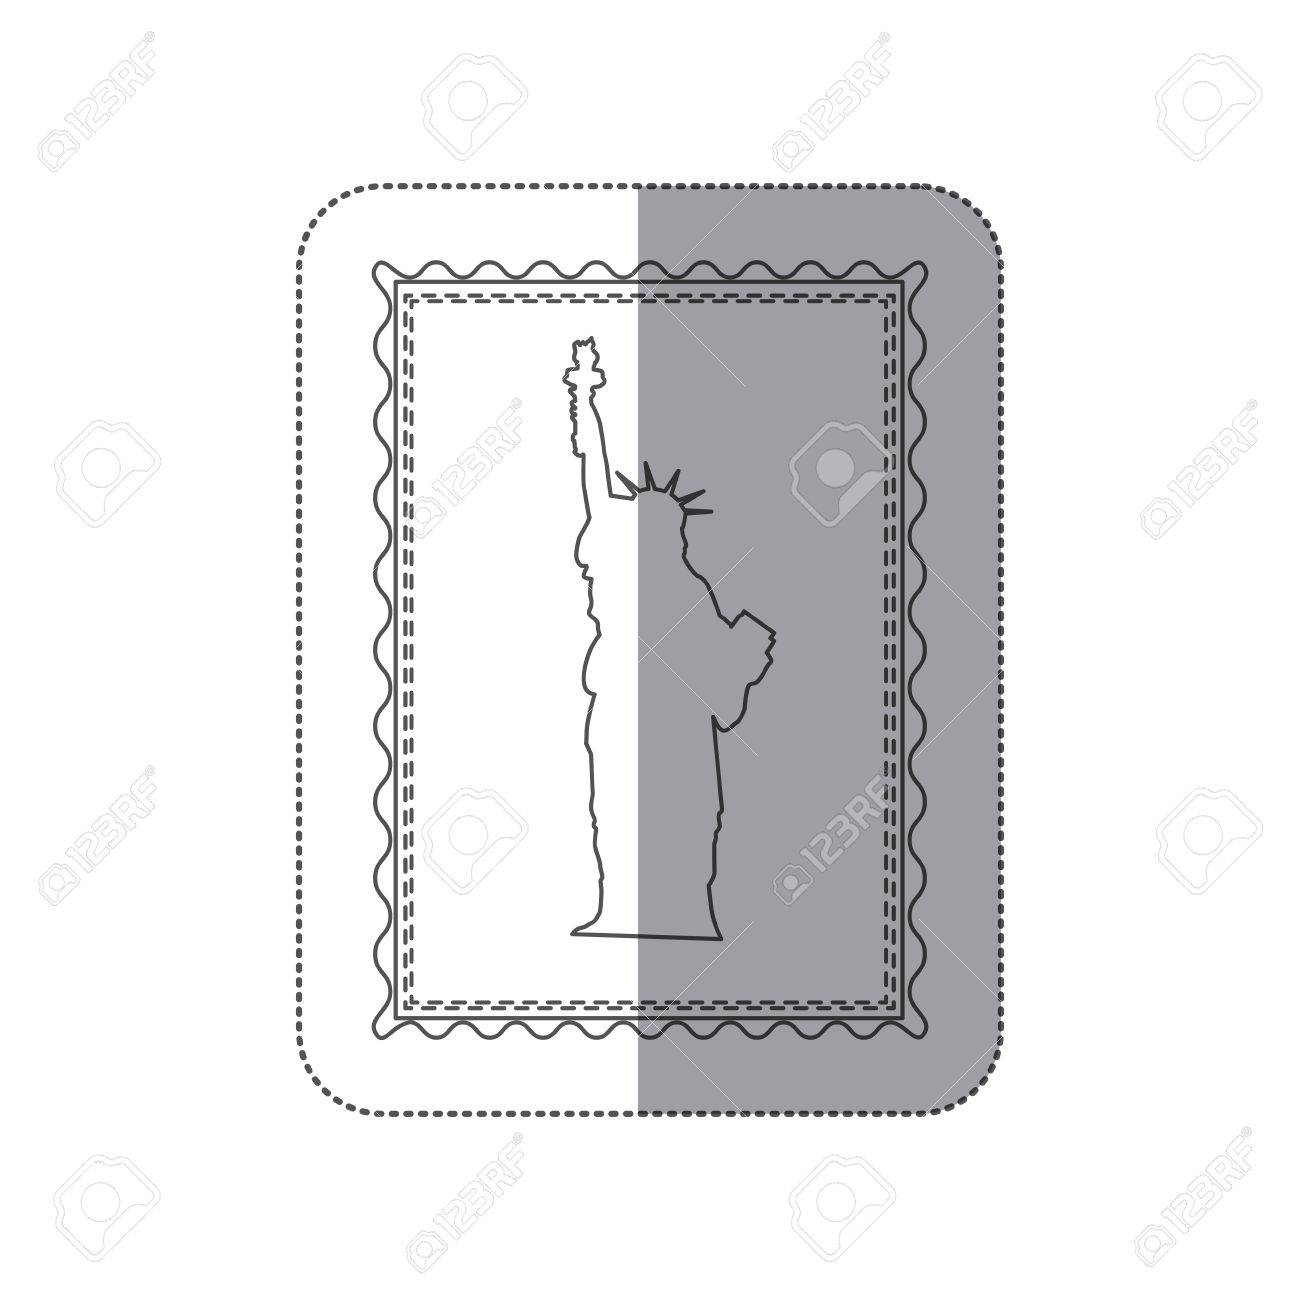 Sticker Monochrome Contour Frame Of Statue Of Liberty Vector